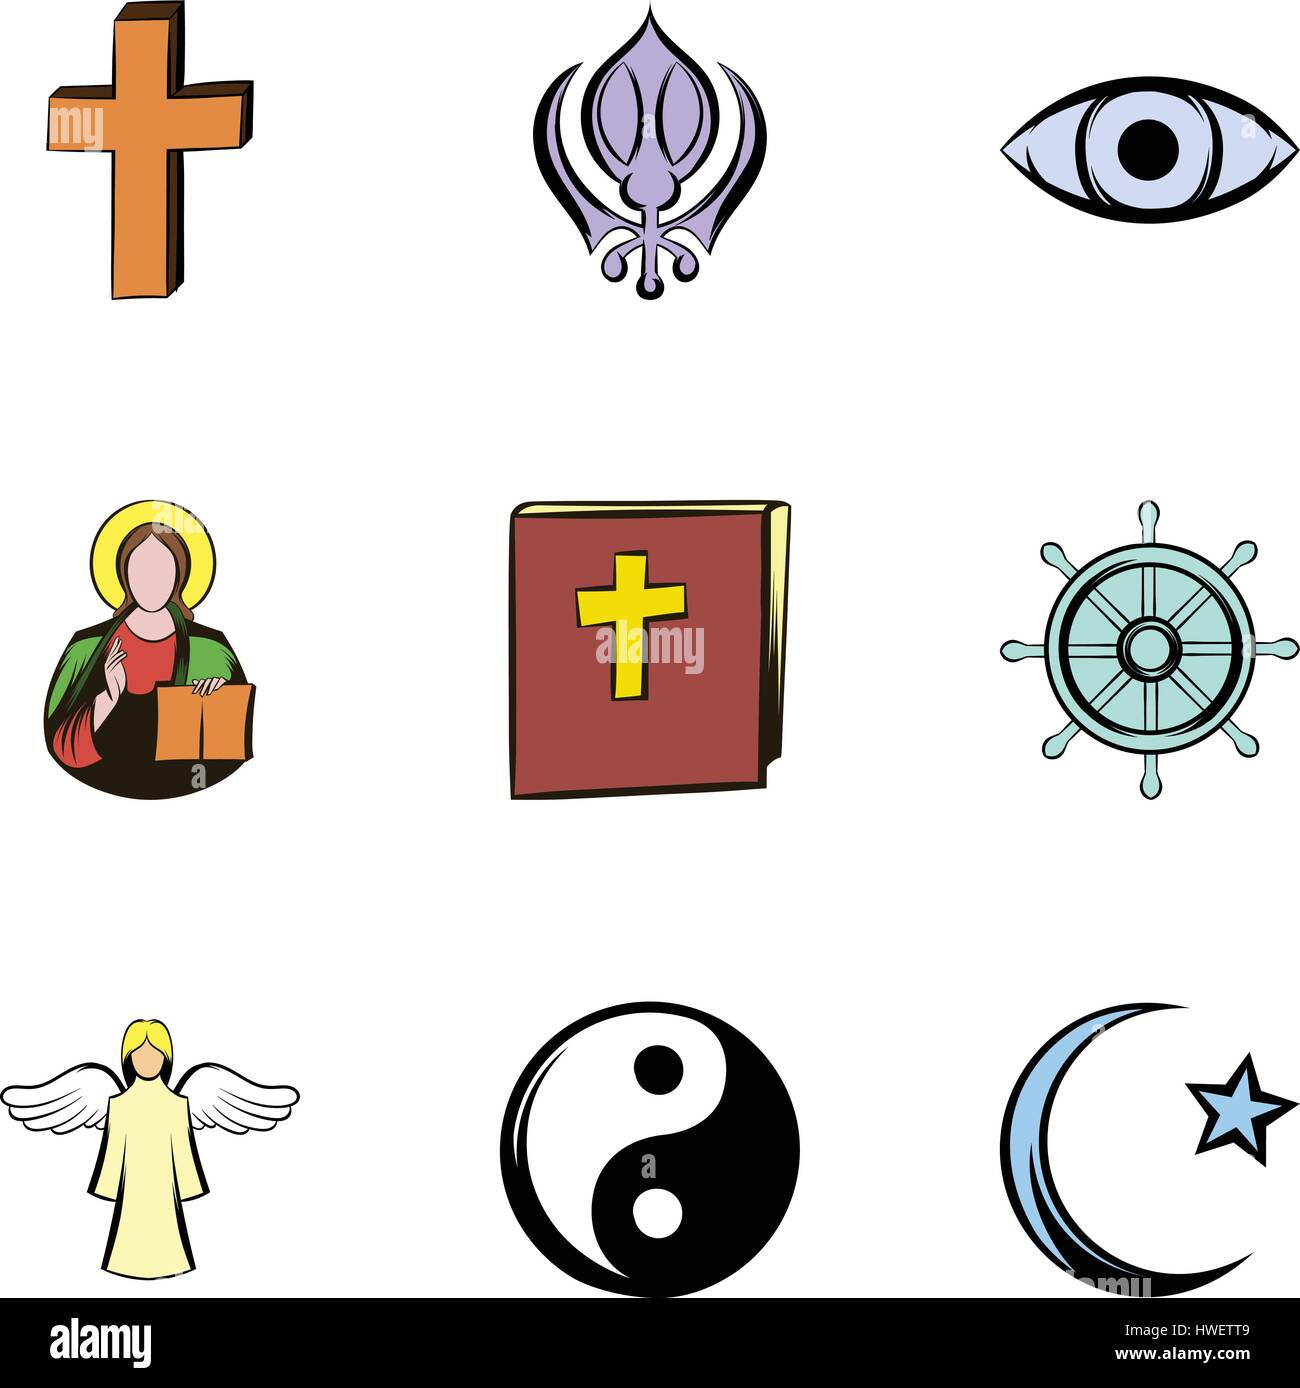 Confucian symbol vector icon stock photos confucian symbol religion symbol icons set cartoon style stock image buycottarizona